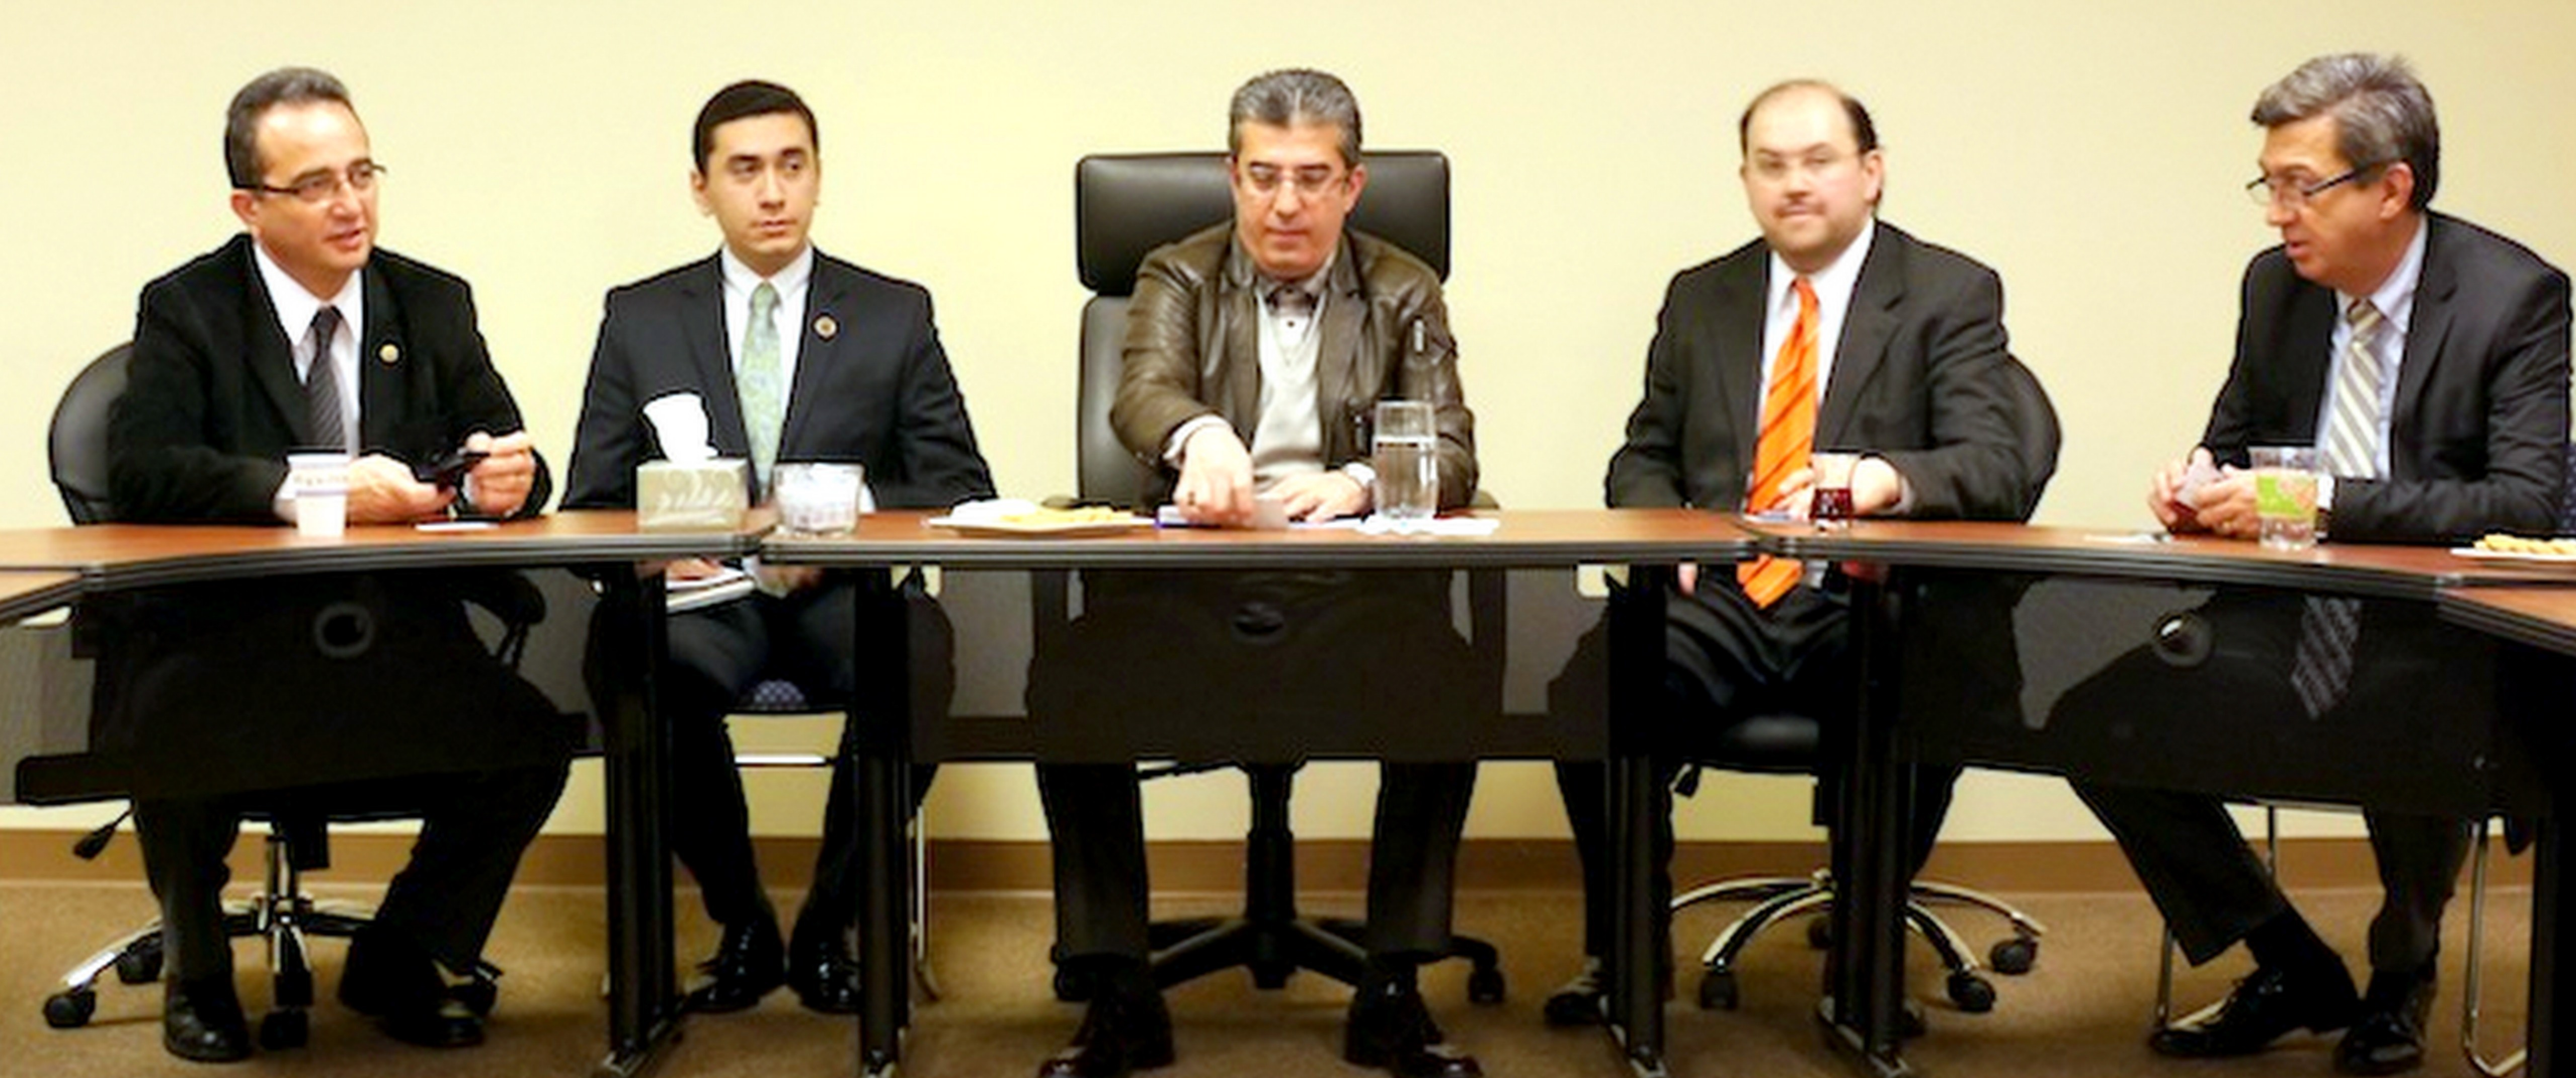 Democracy and Human Rights in Turkey Today - Views from the CHP Opposition - ROUNDTABLE